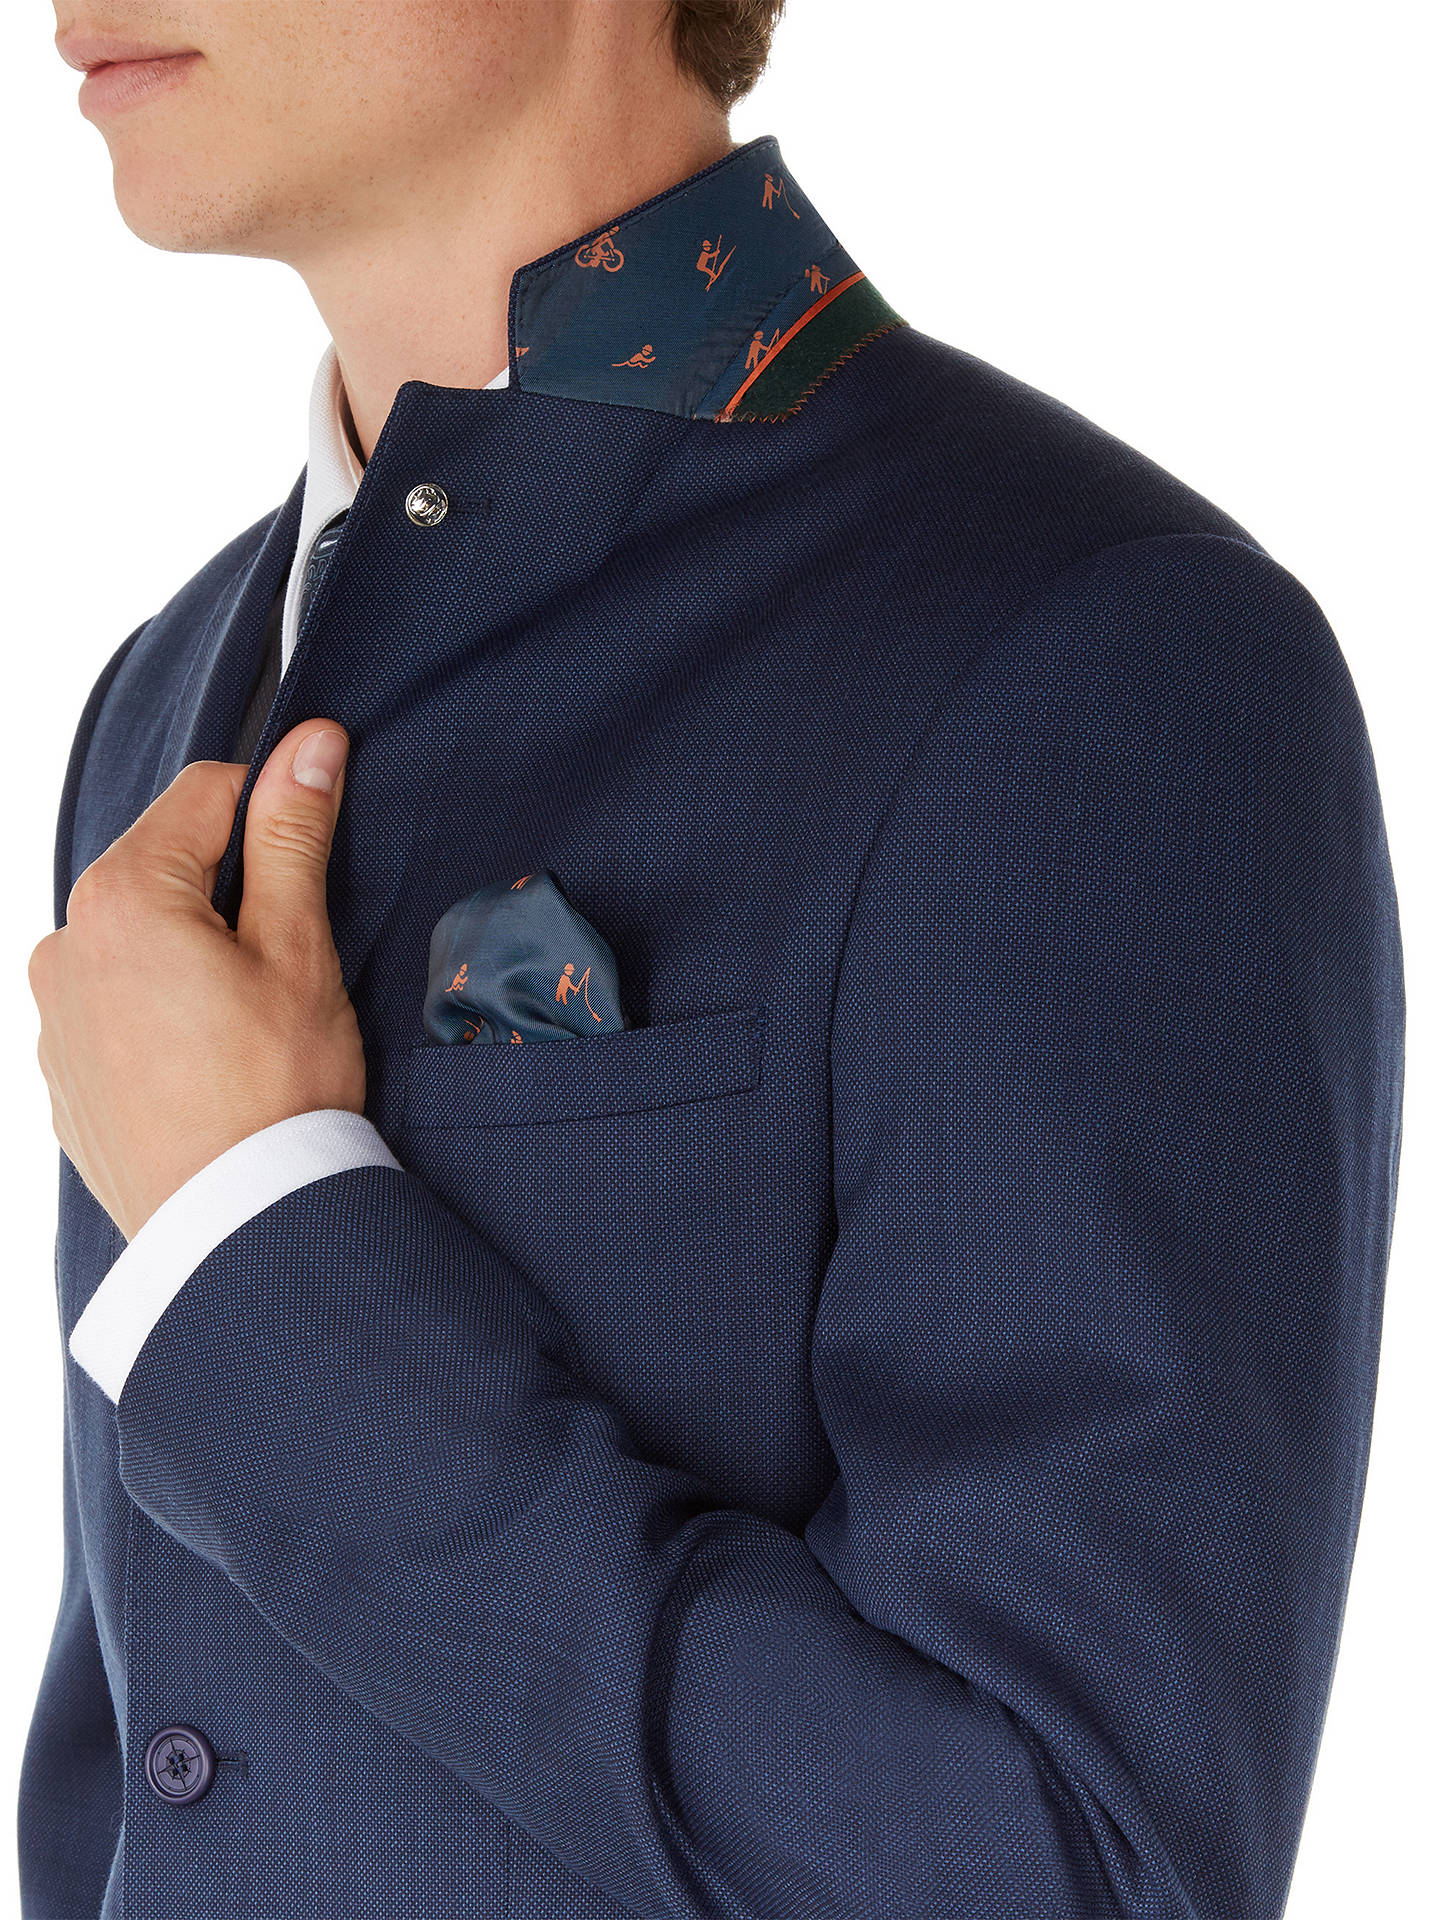 BuyTed Baker Performance Ovract Wool Birdseye Suit Jacket, Navy, 40S Online at johnlewis.com